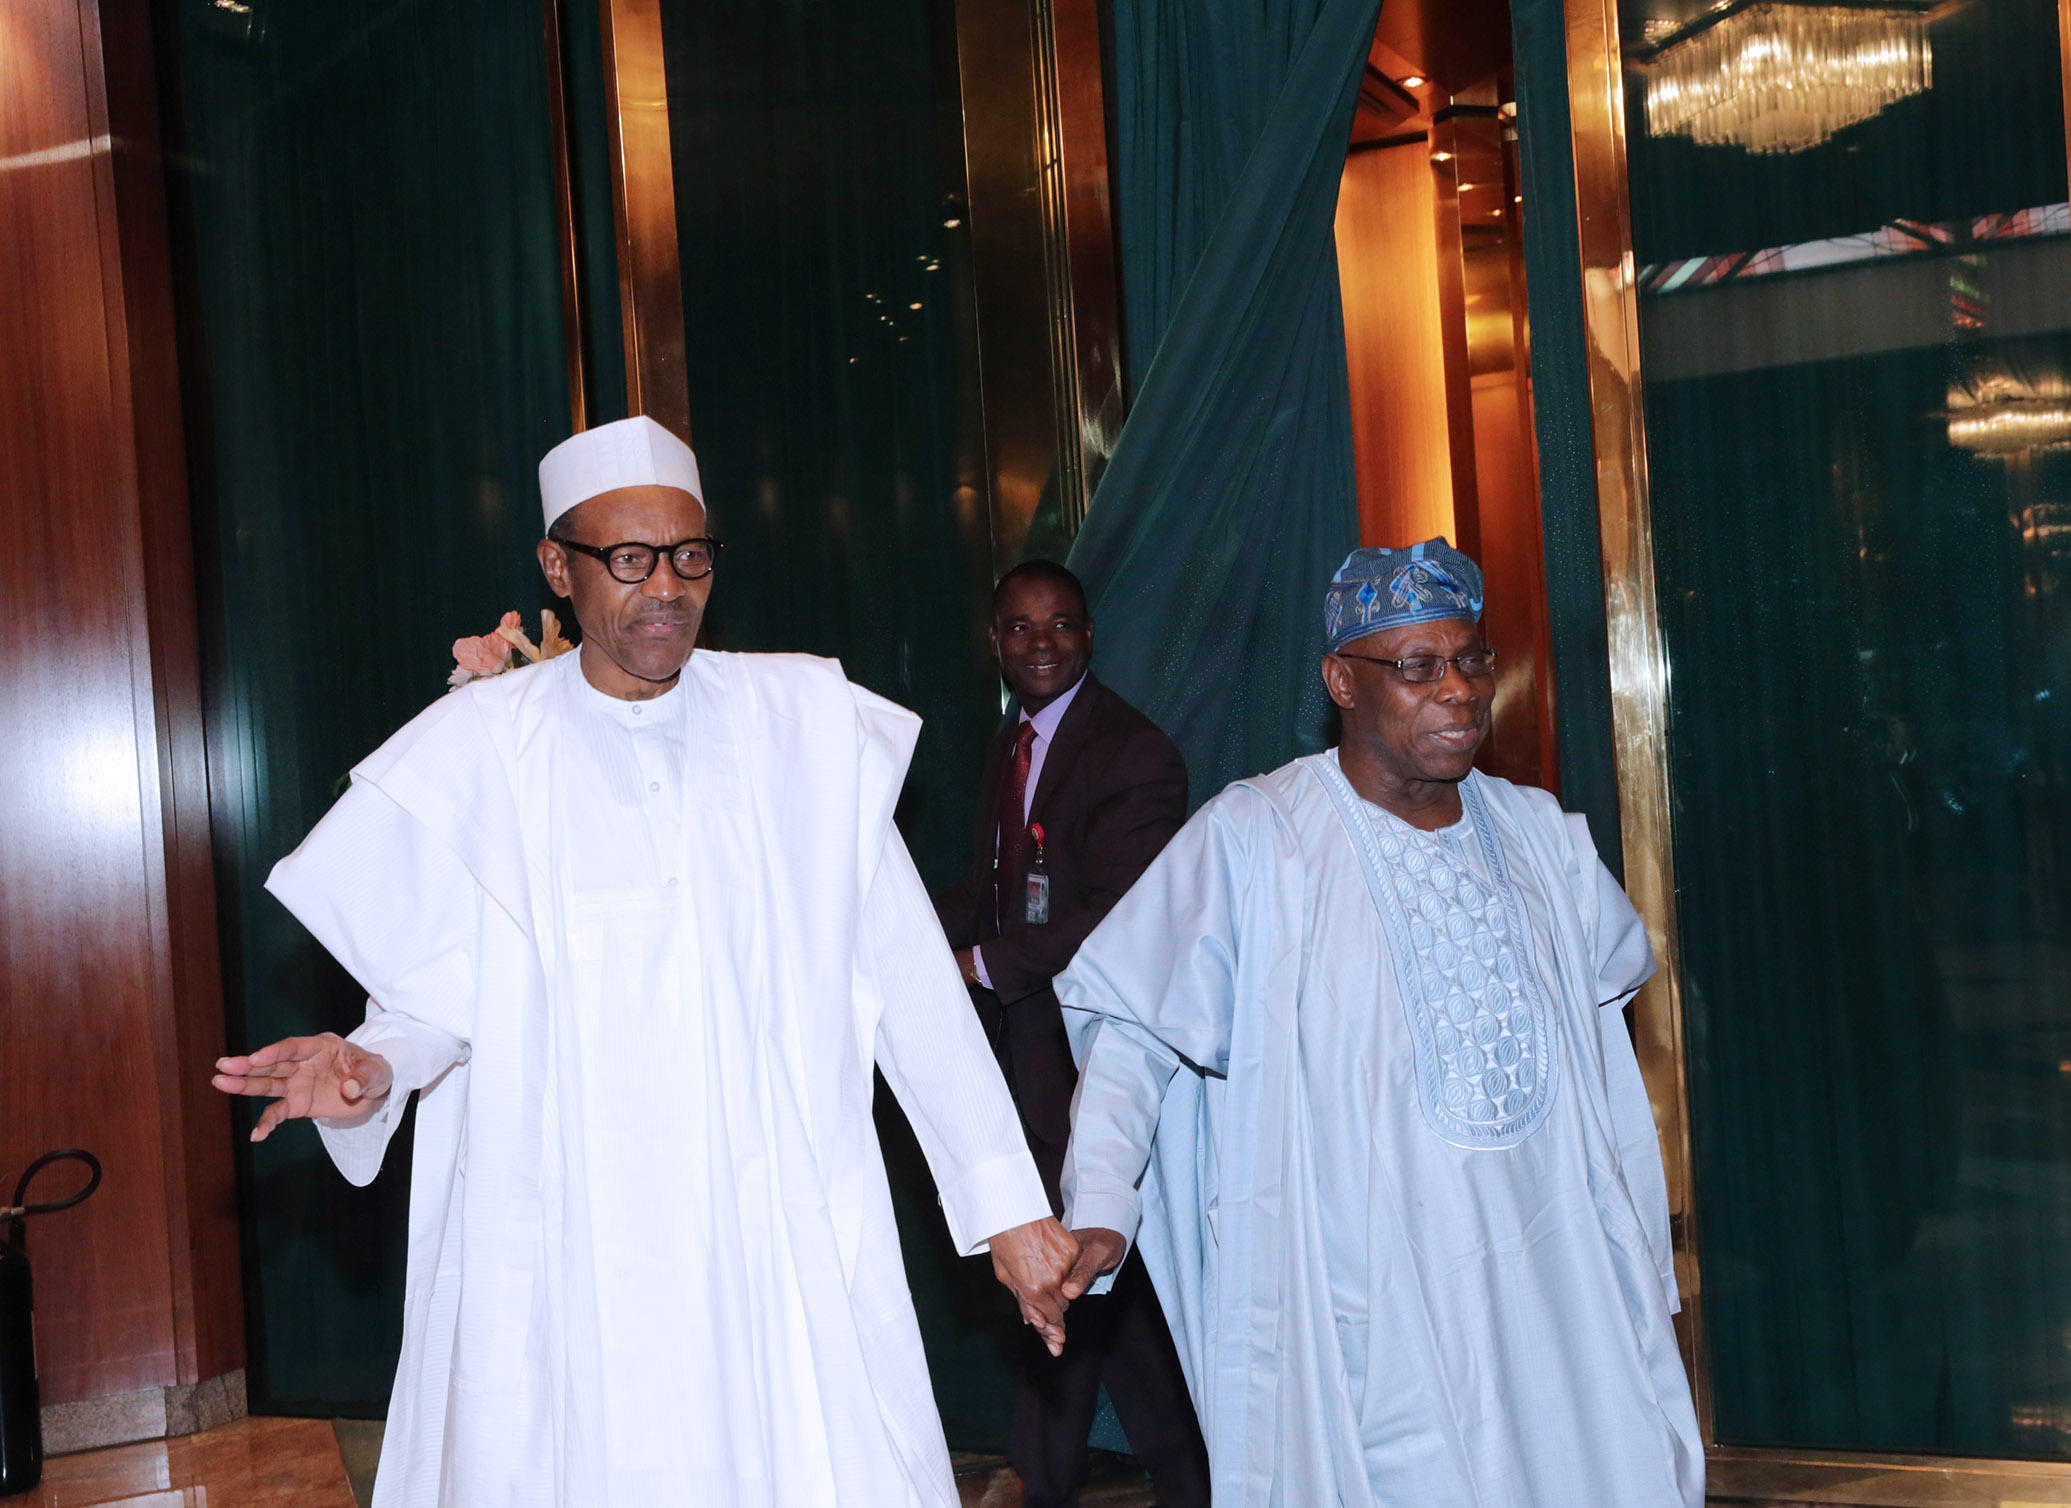 Obasanjo says Buhari's presidency has been a spectacular failure